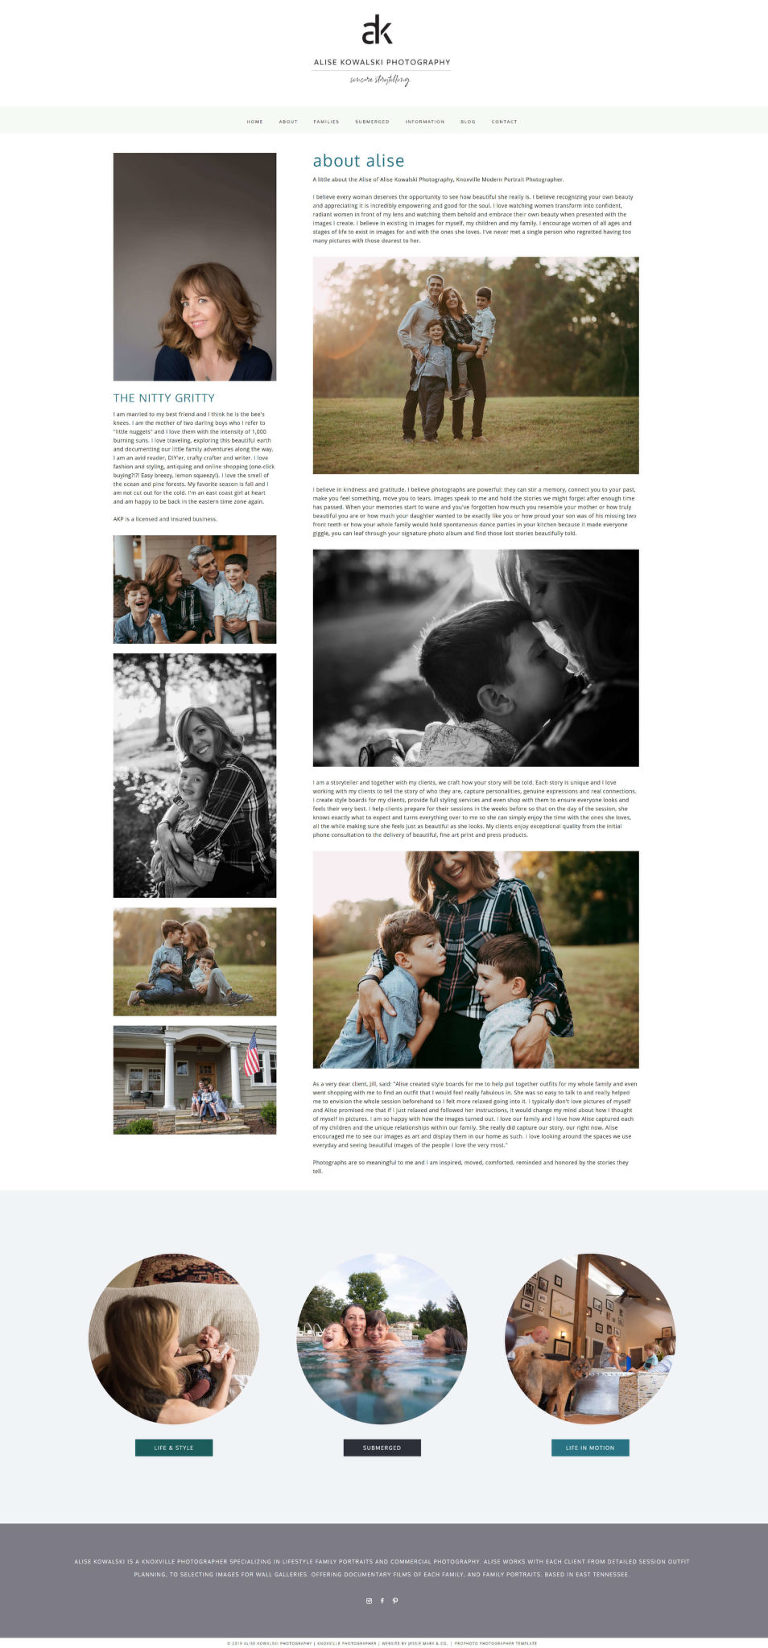 Pro Photo designer Jessie Mary & Co created this custom website for Knoxville photographer Alise - about the artist